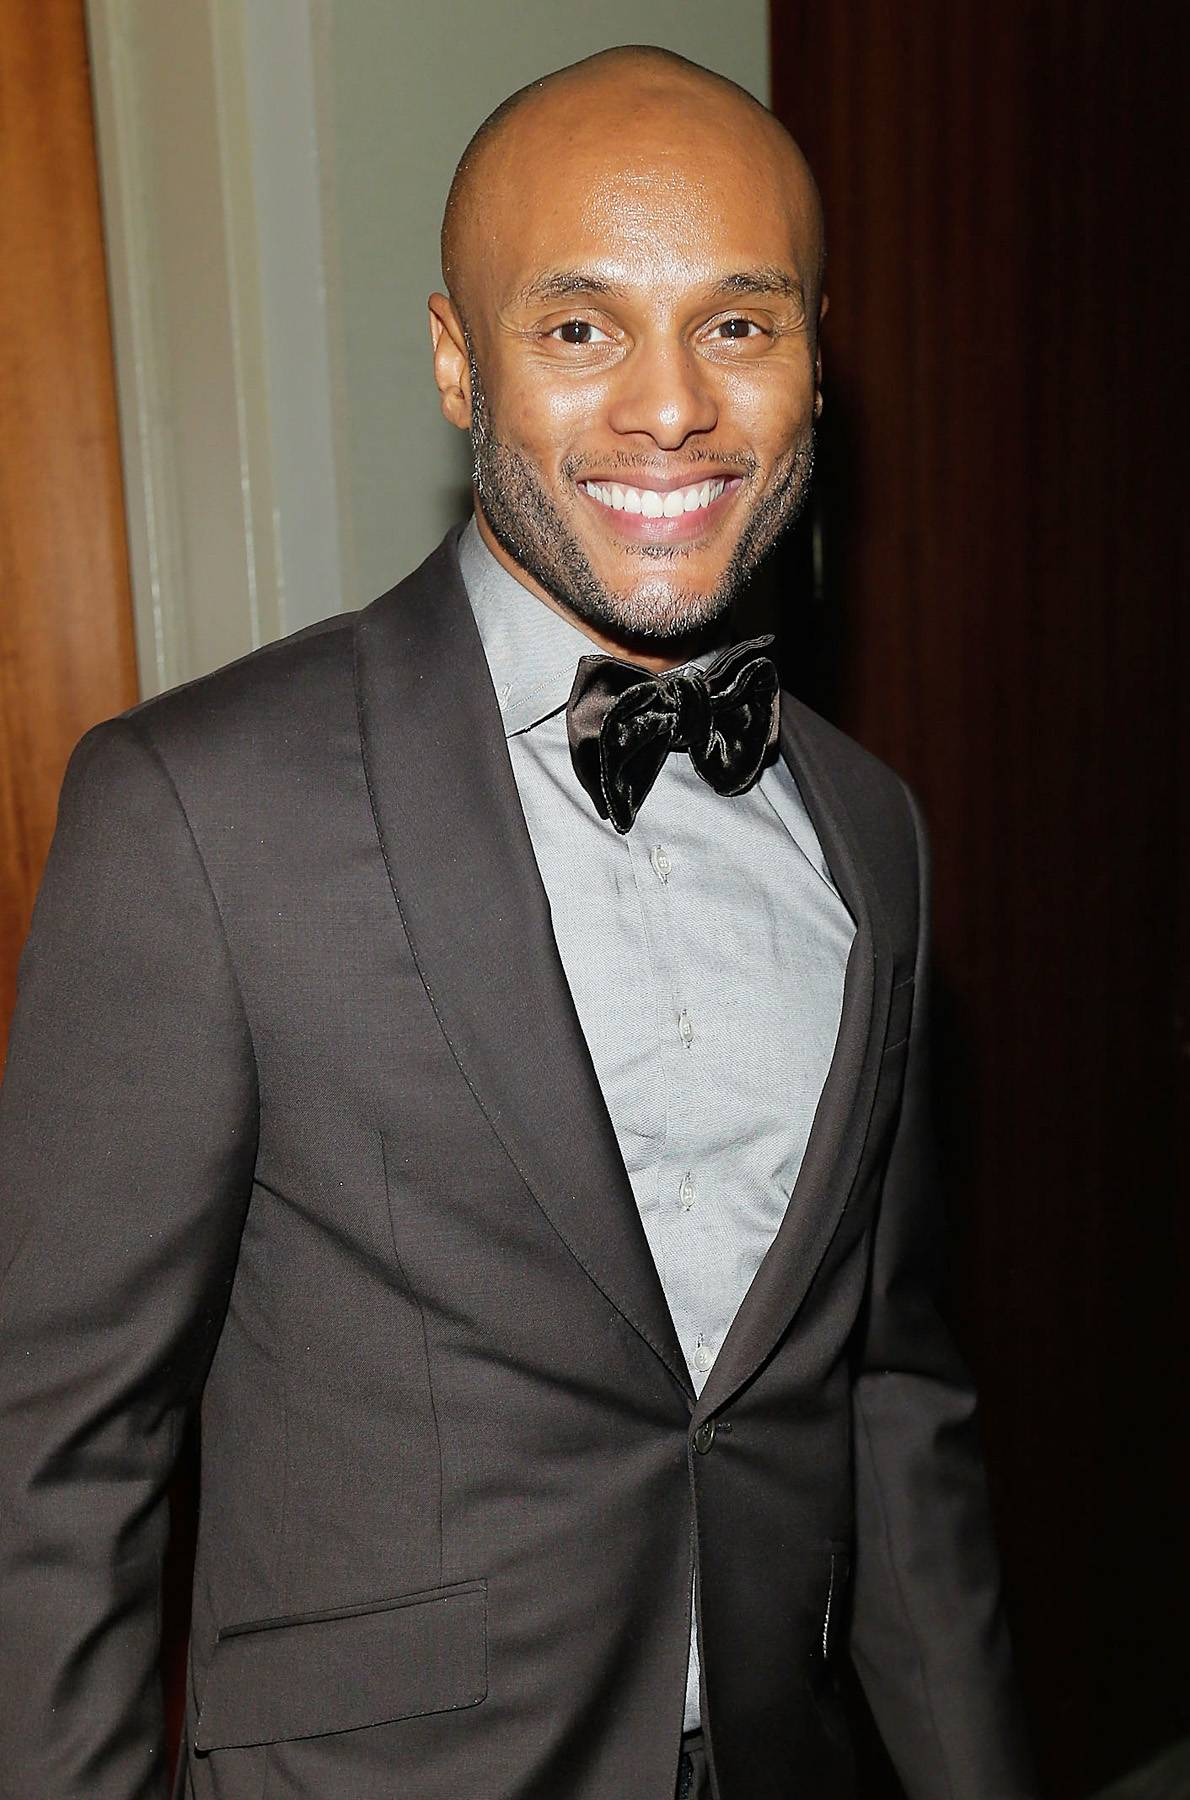 """Best Independent R&B/Soul Performance: Kenny Lattimore - """"Find A Way"""" - Regarded as a noted R&B singer, Lattimore marked the 2012 launch of his indie record label SincereSoul Records, with the release of this smooth groove which became a Urban AC radio hit. (Photo: Jemal Countess/Getty Images)"""